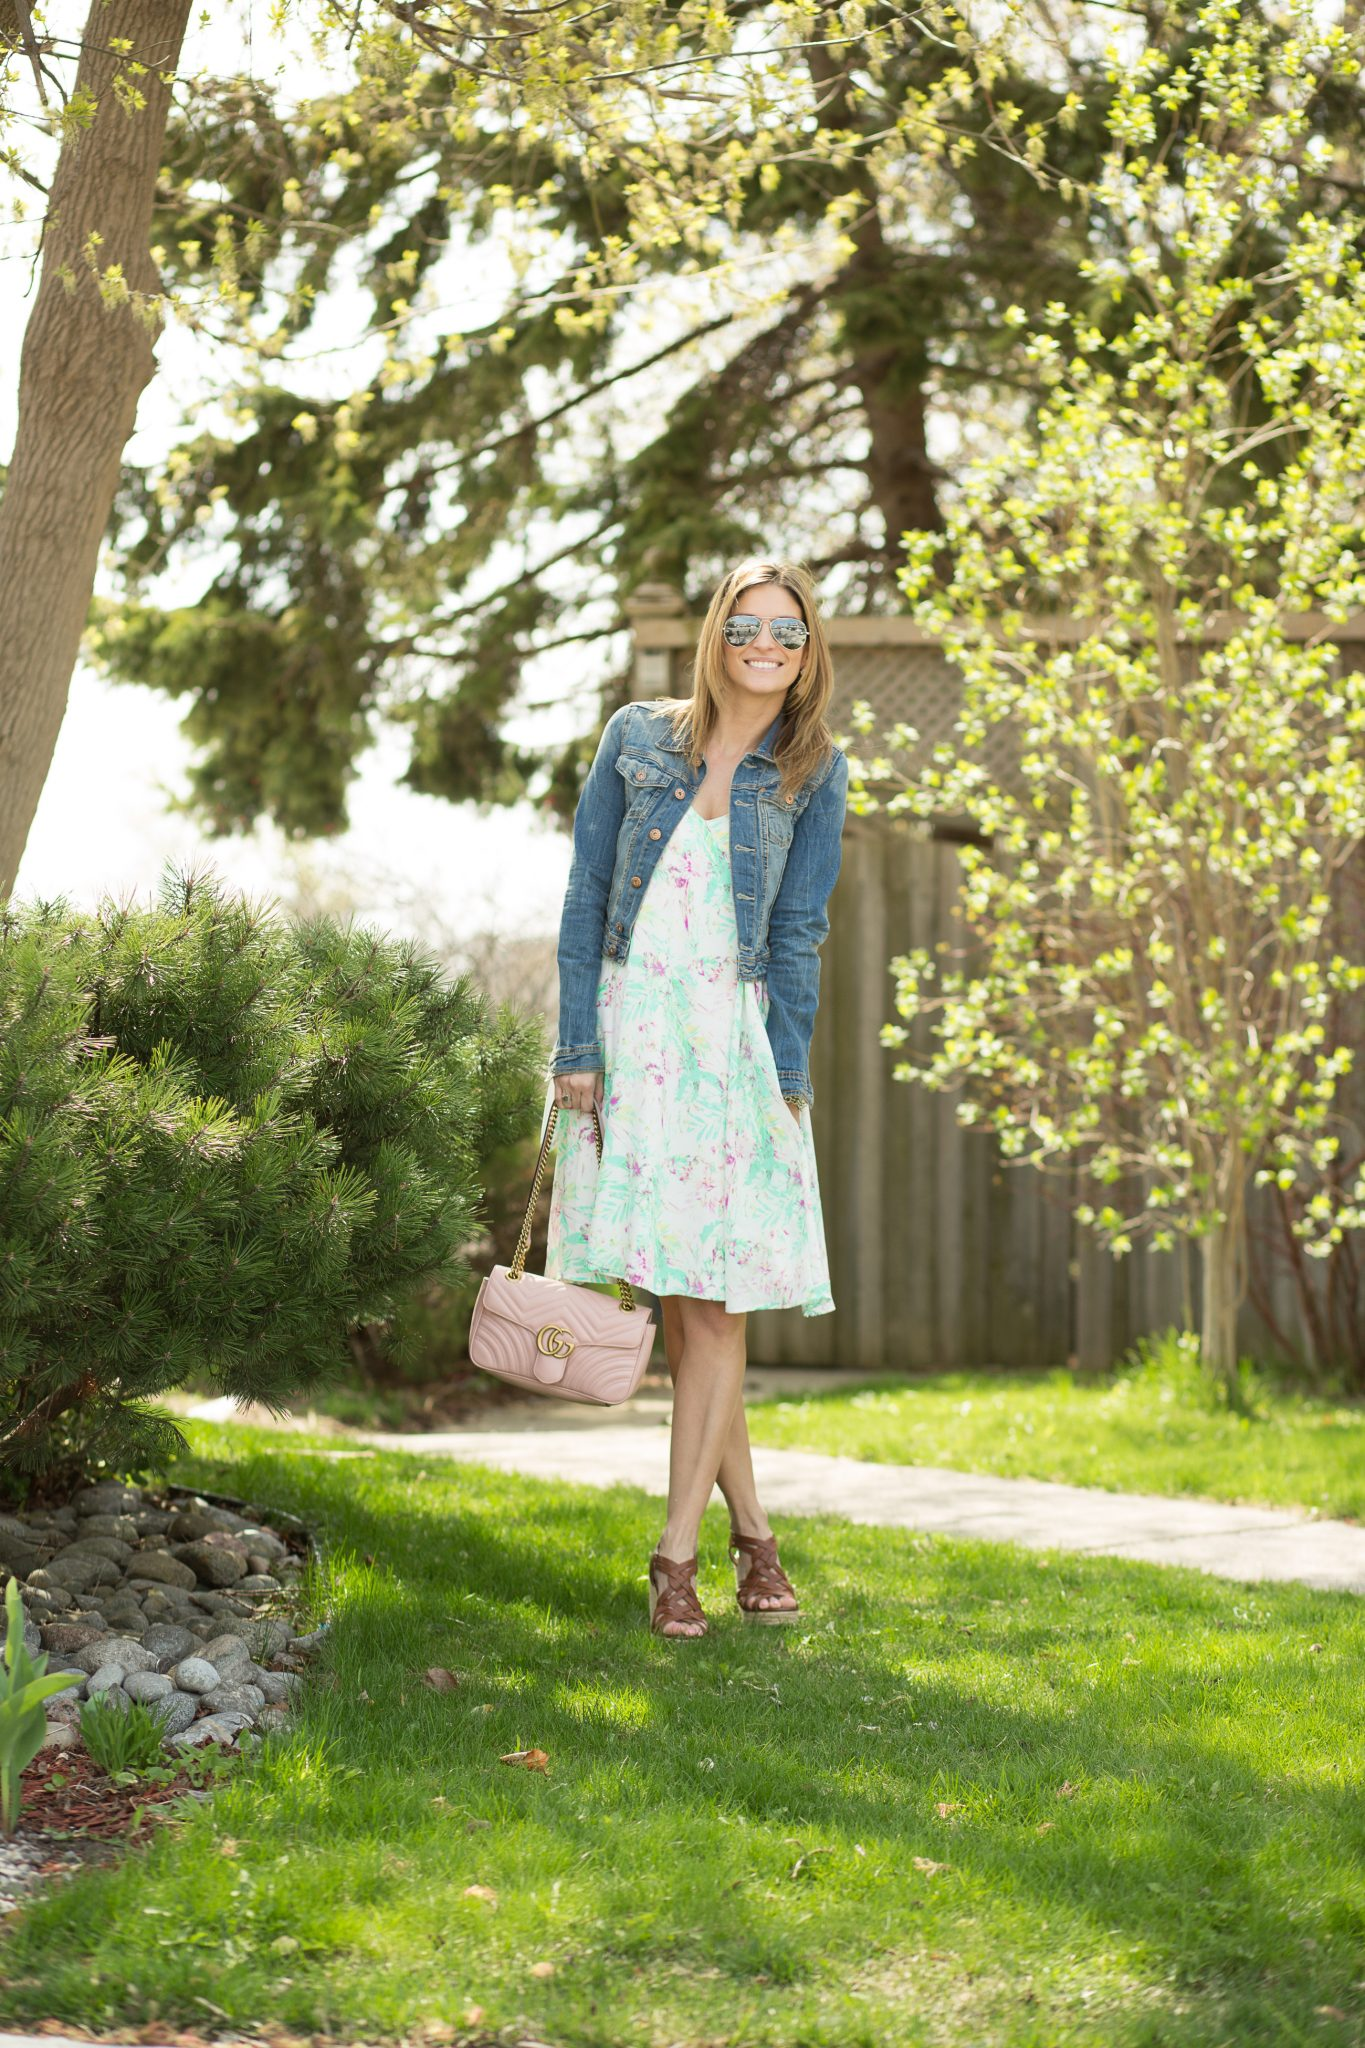 Perfect floral dress from Pink Blush with a jean jacket for spring weather